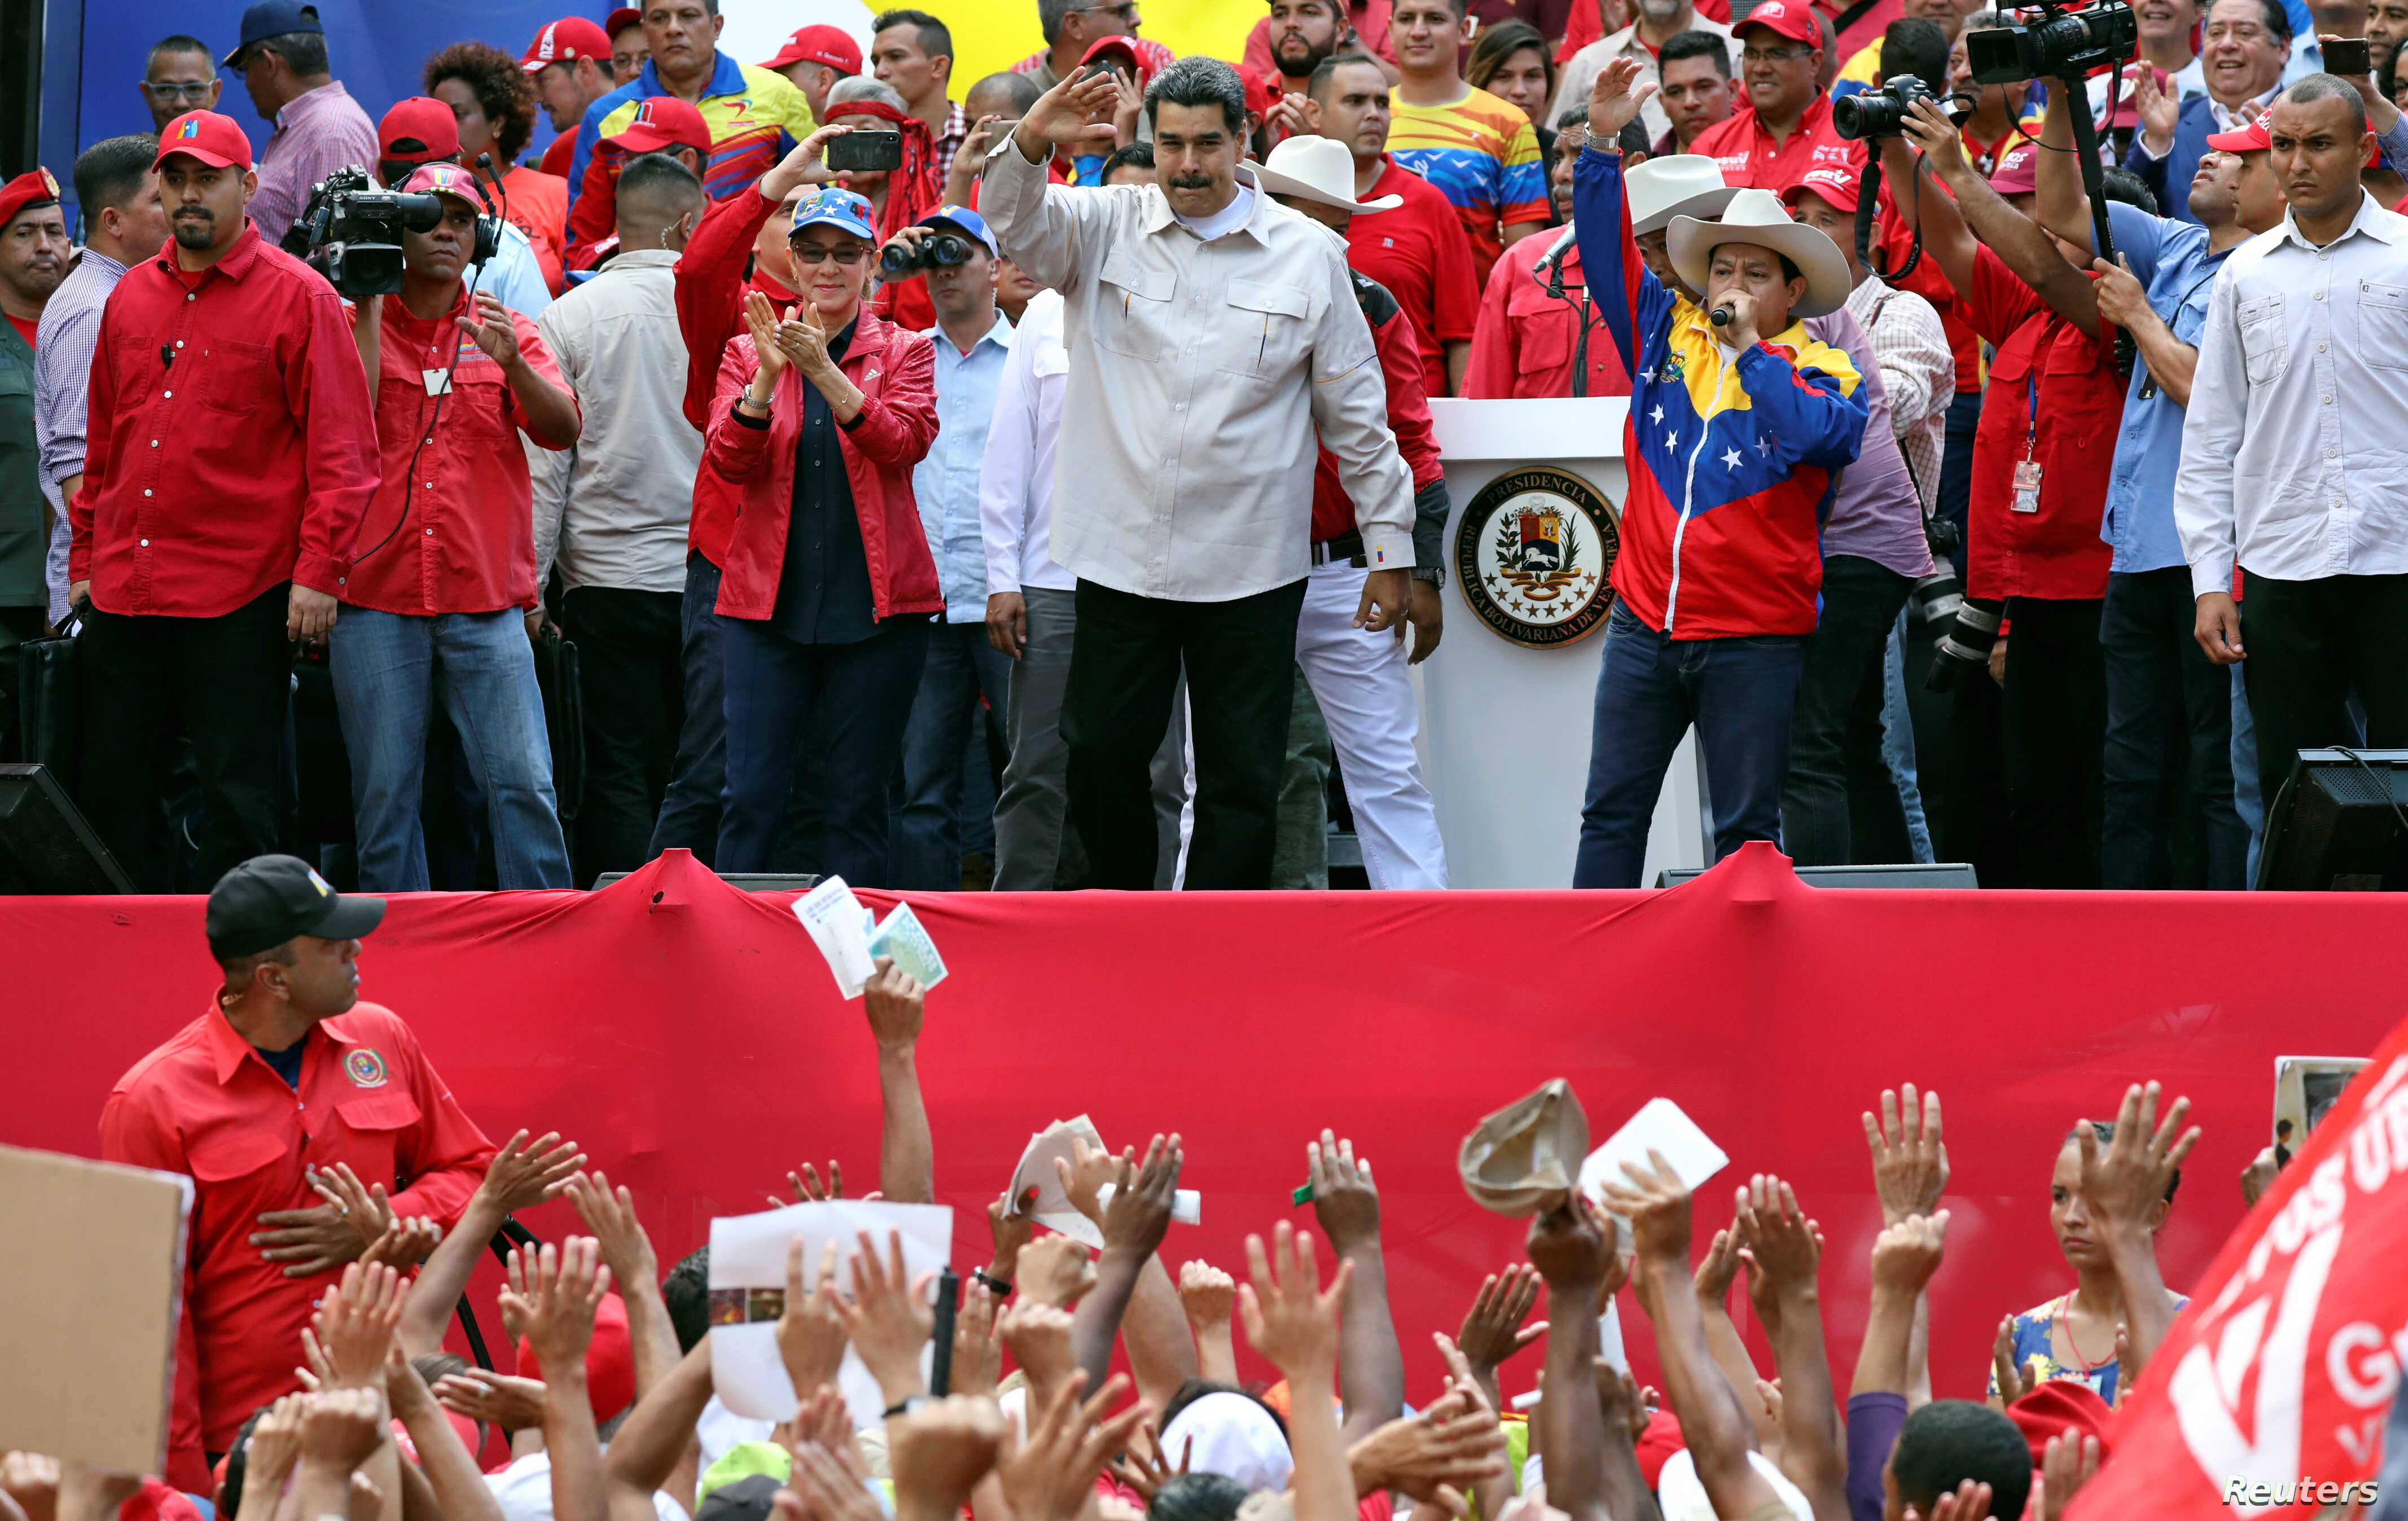 Venezuela's President Nicolas Maduro attends a rally in support of his government in Caracas, April 6, 2019.